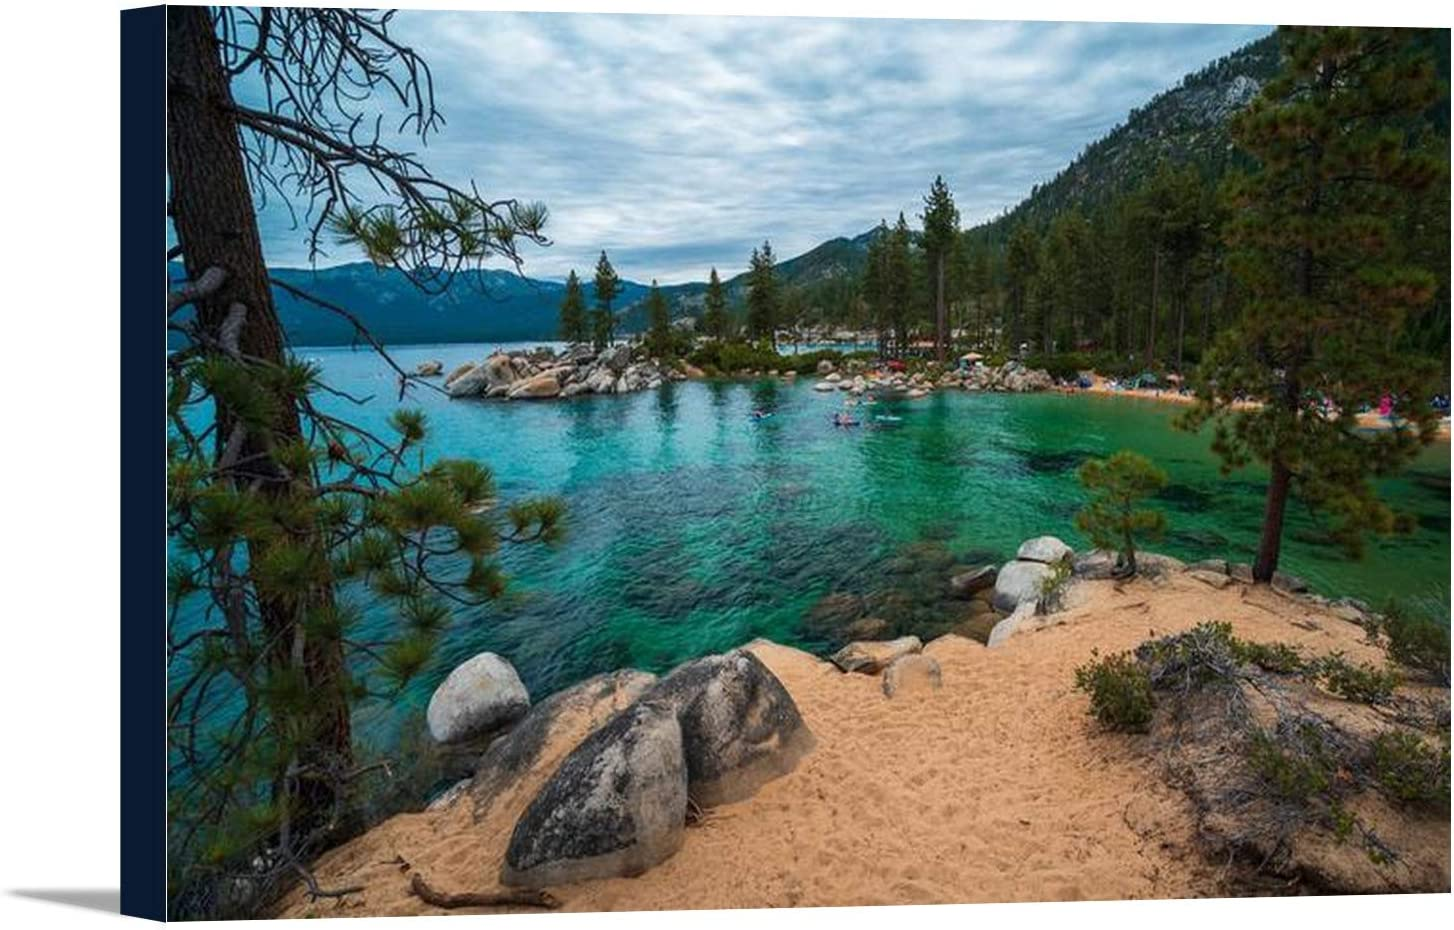 Nevada - Sand Harbor Beach Outlet SALE Lake Park Gallery Super sale period limited 36x24 Tahoe State